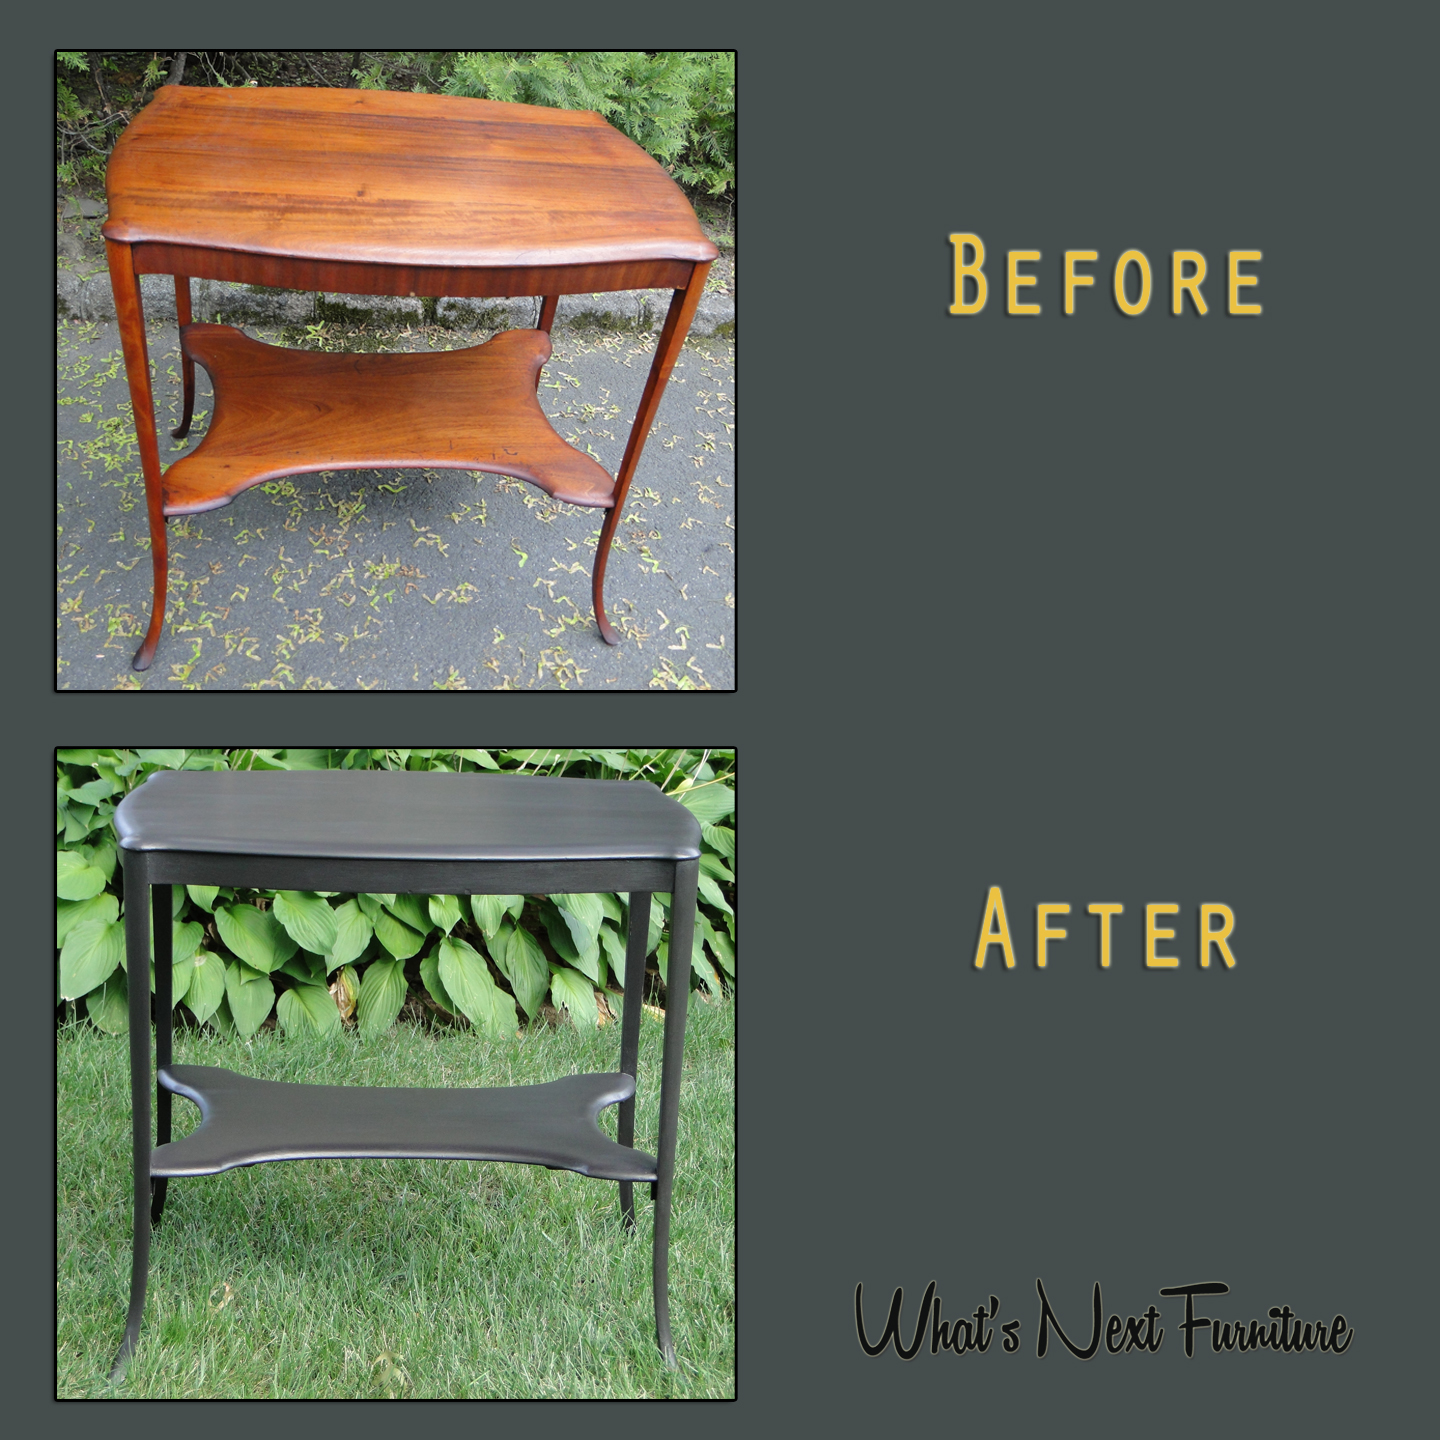 Black newbie table for Jessica before after square grey.jpg